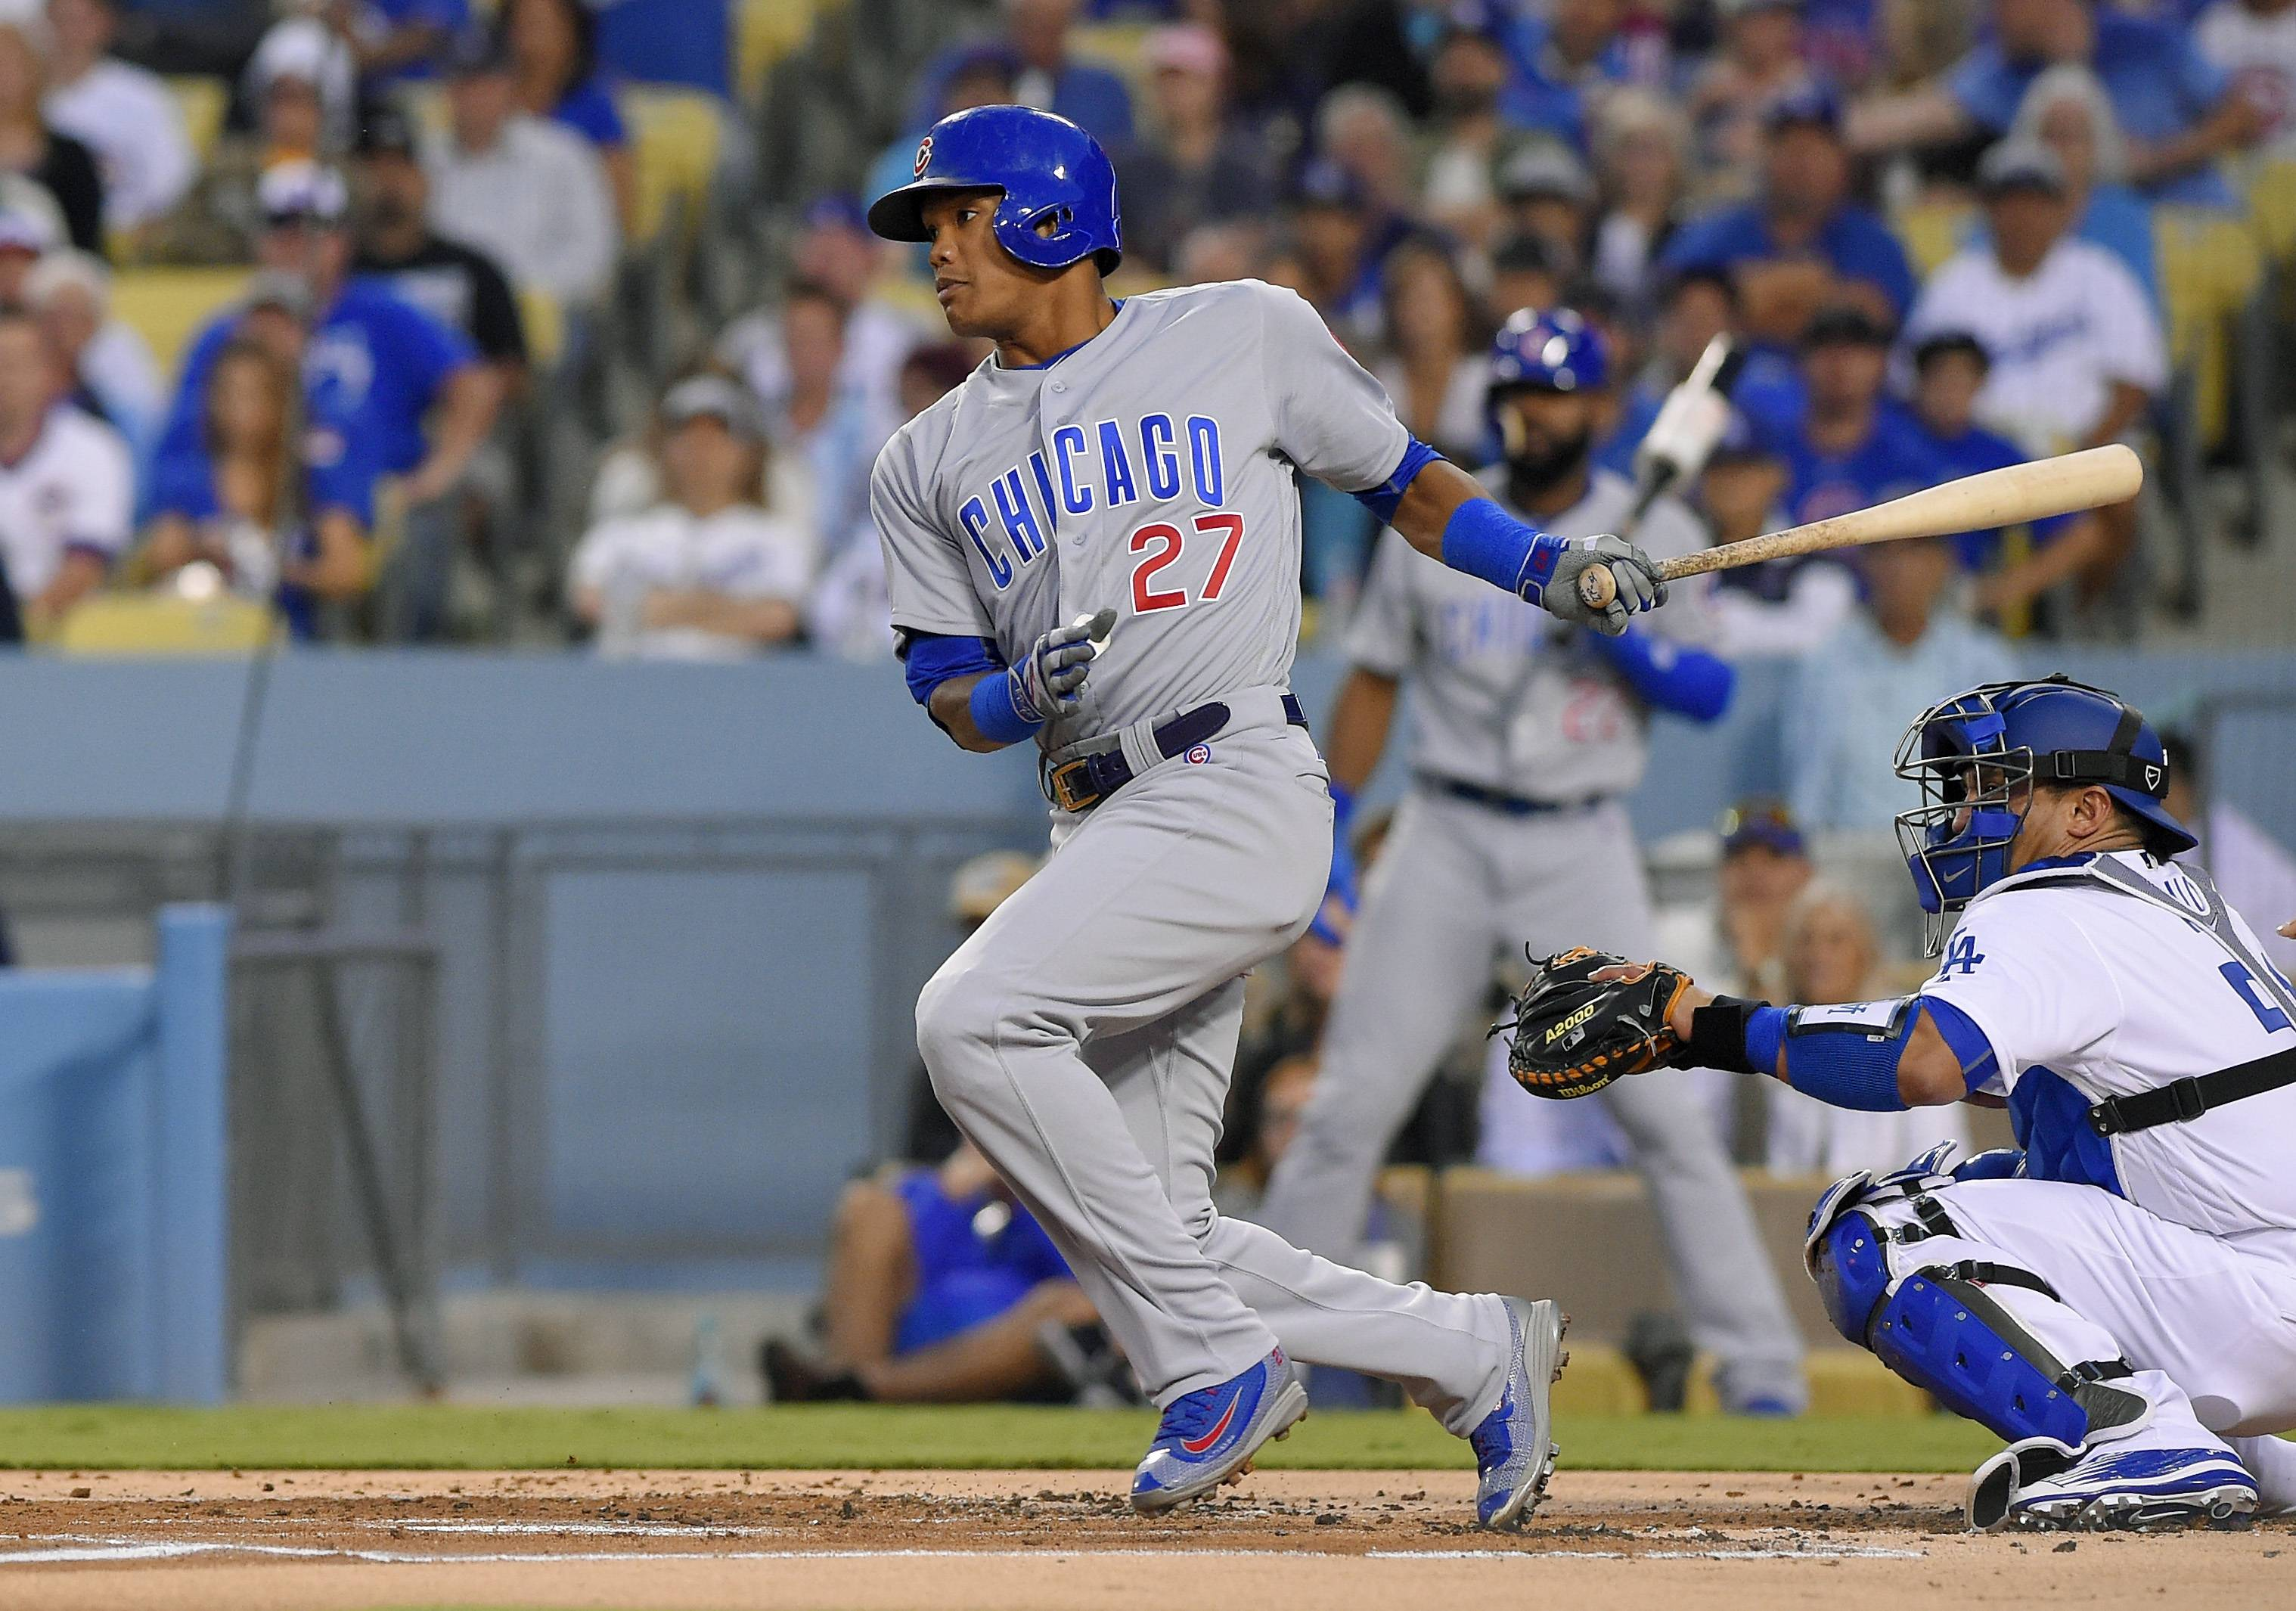 Chicago Cubs' Addison Russell, left, hits an RBI-single as Los Angeles Dodgers catcher Carlos Ruiz watches during the first inning of a baseball game, Friday, Aug. 26, 2016, in Los Angeles. (AP Photo/Mark J. Terrill)